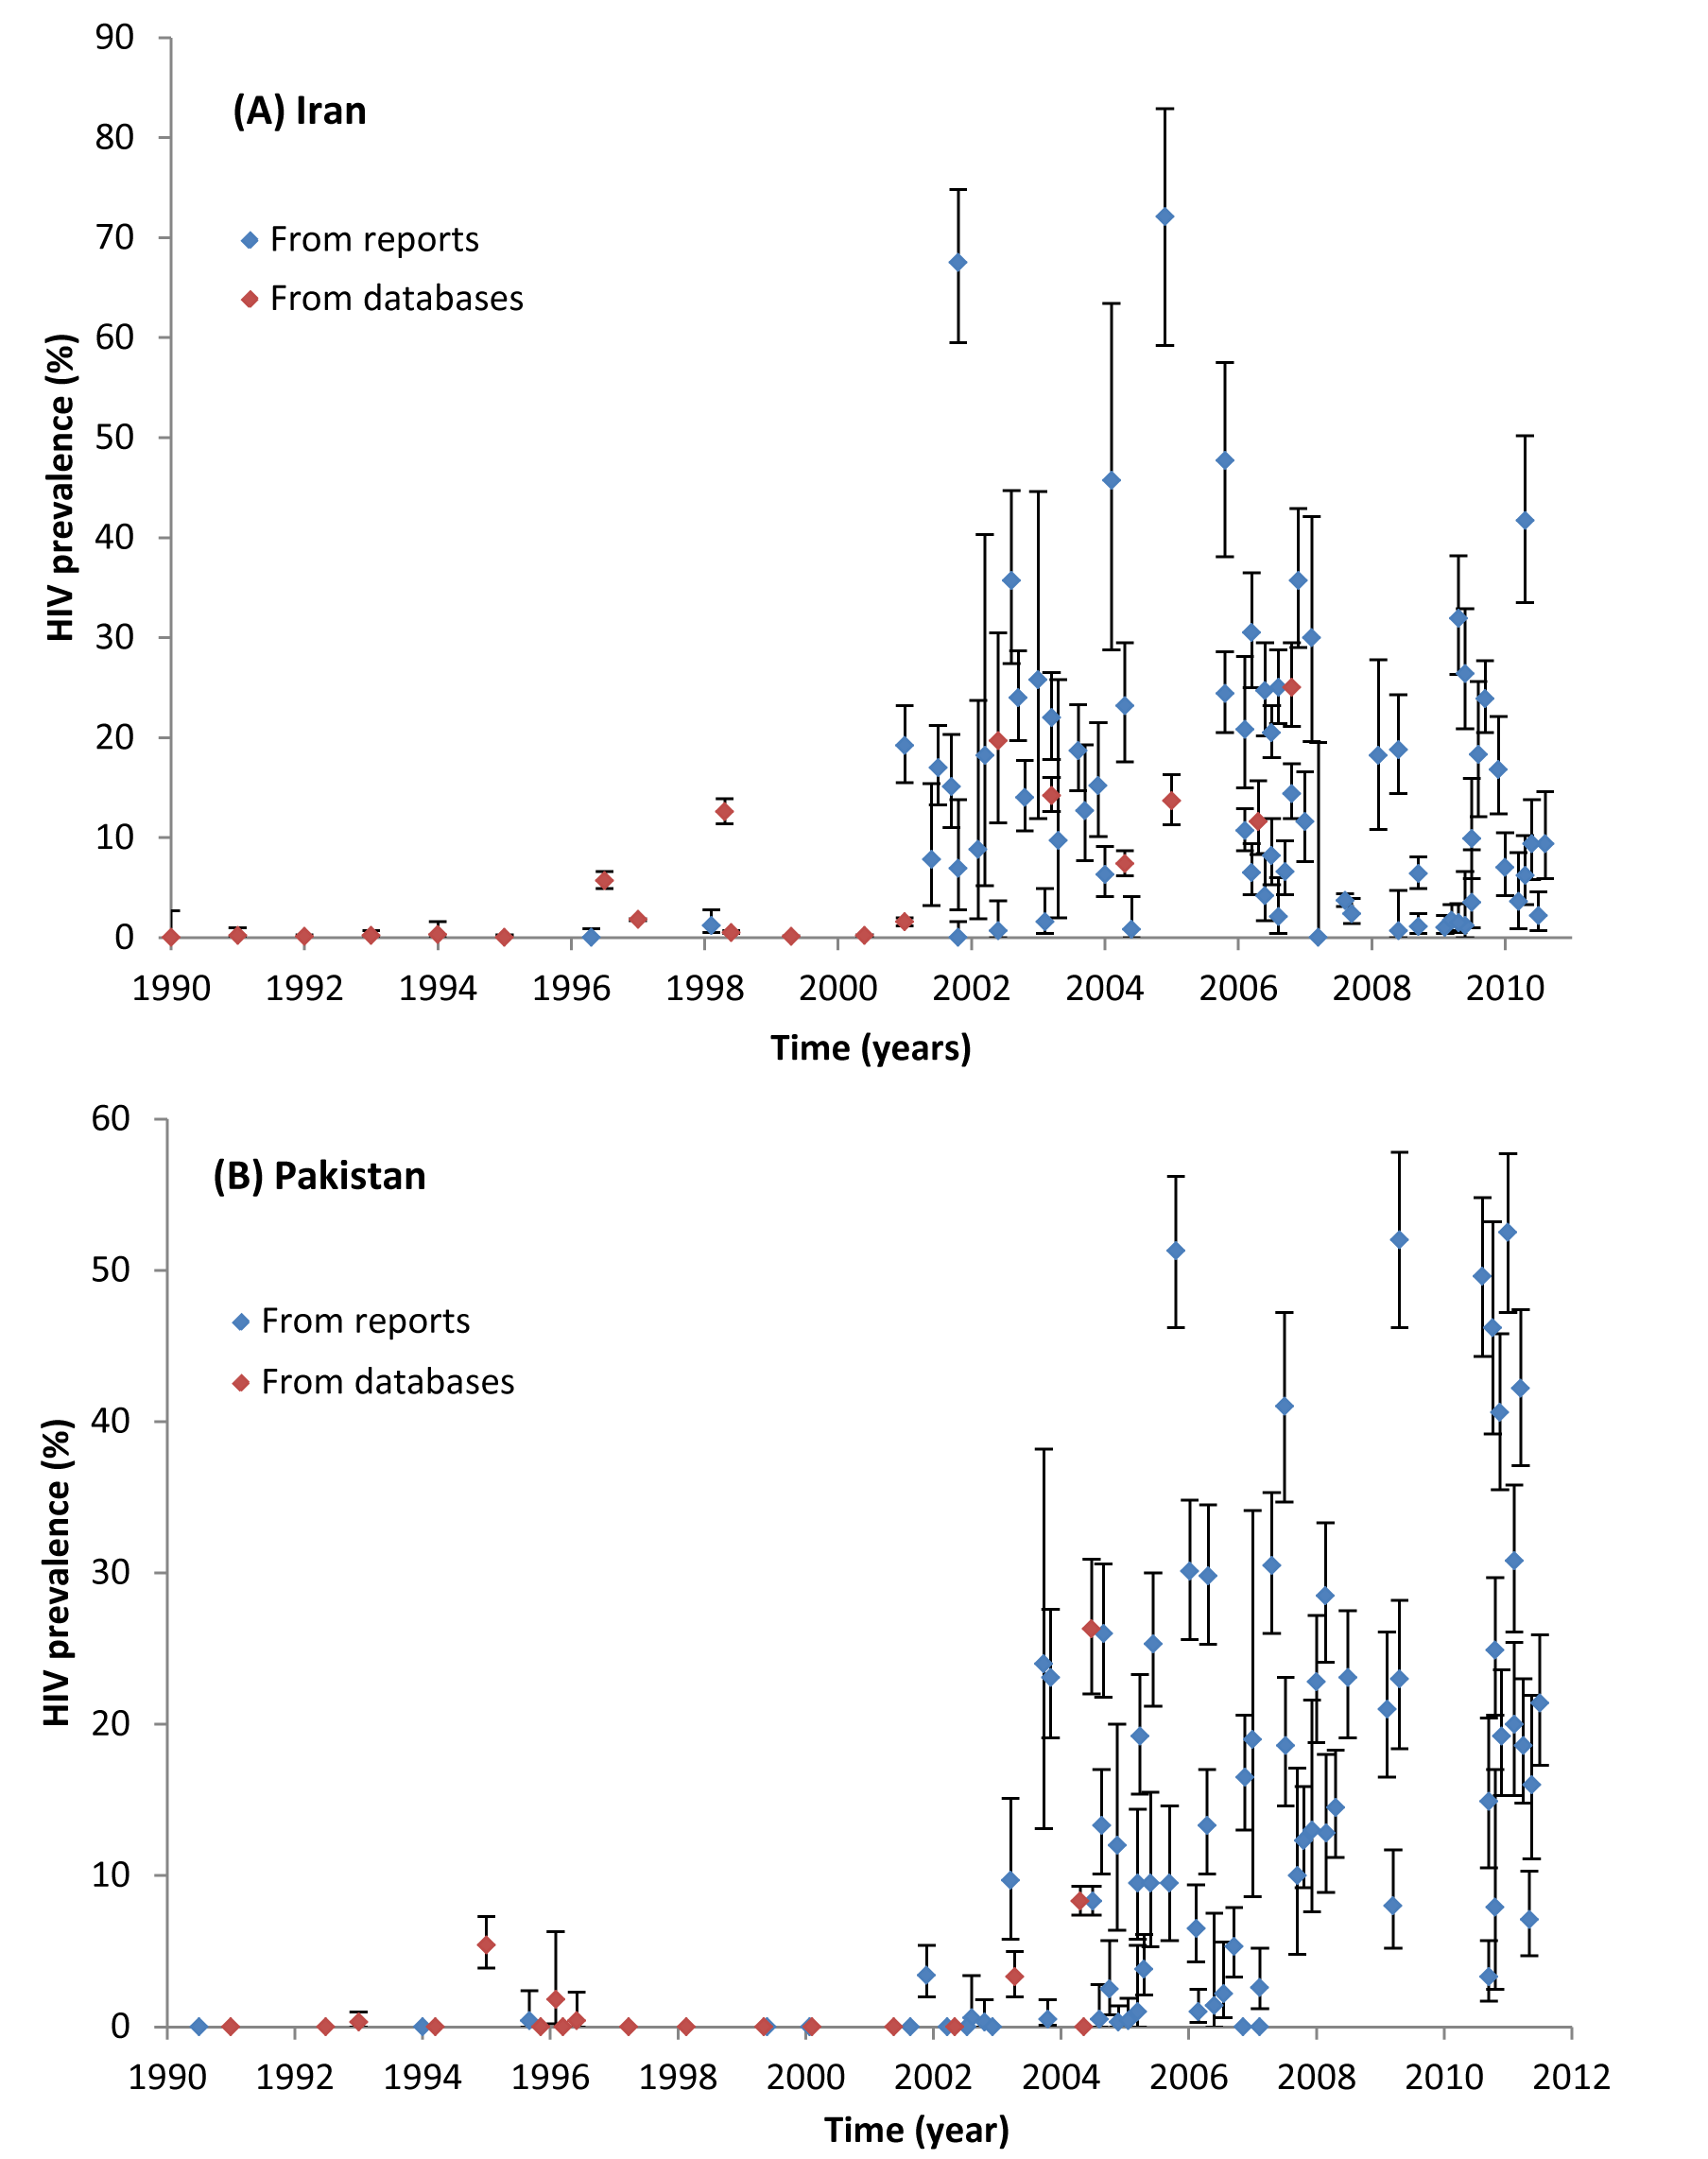 Trend of HIV prevalence among male people who inject drugs in (A) Iran and (B) Pakistan.